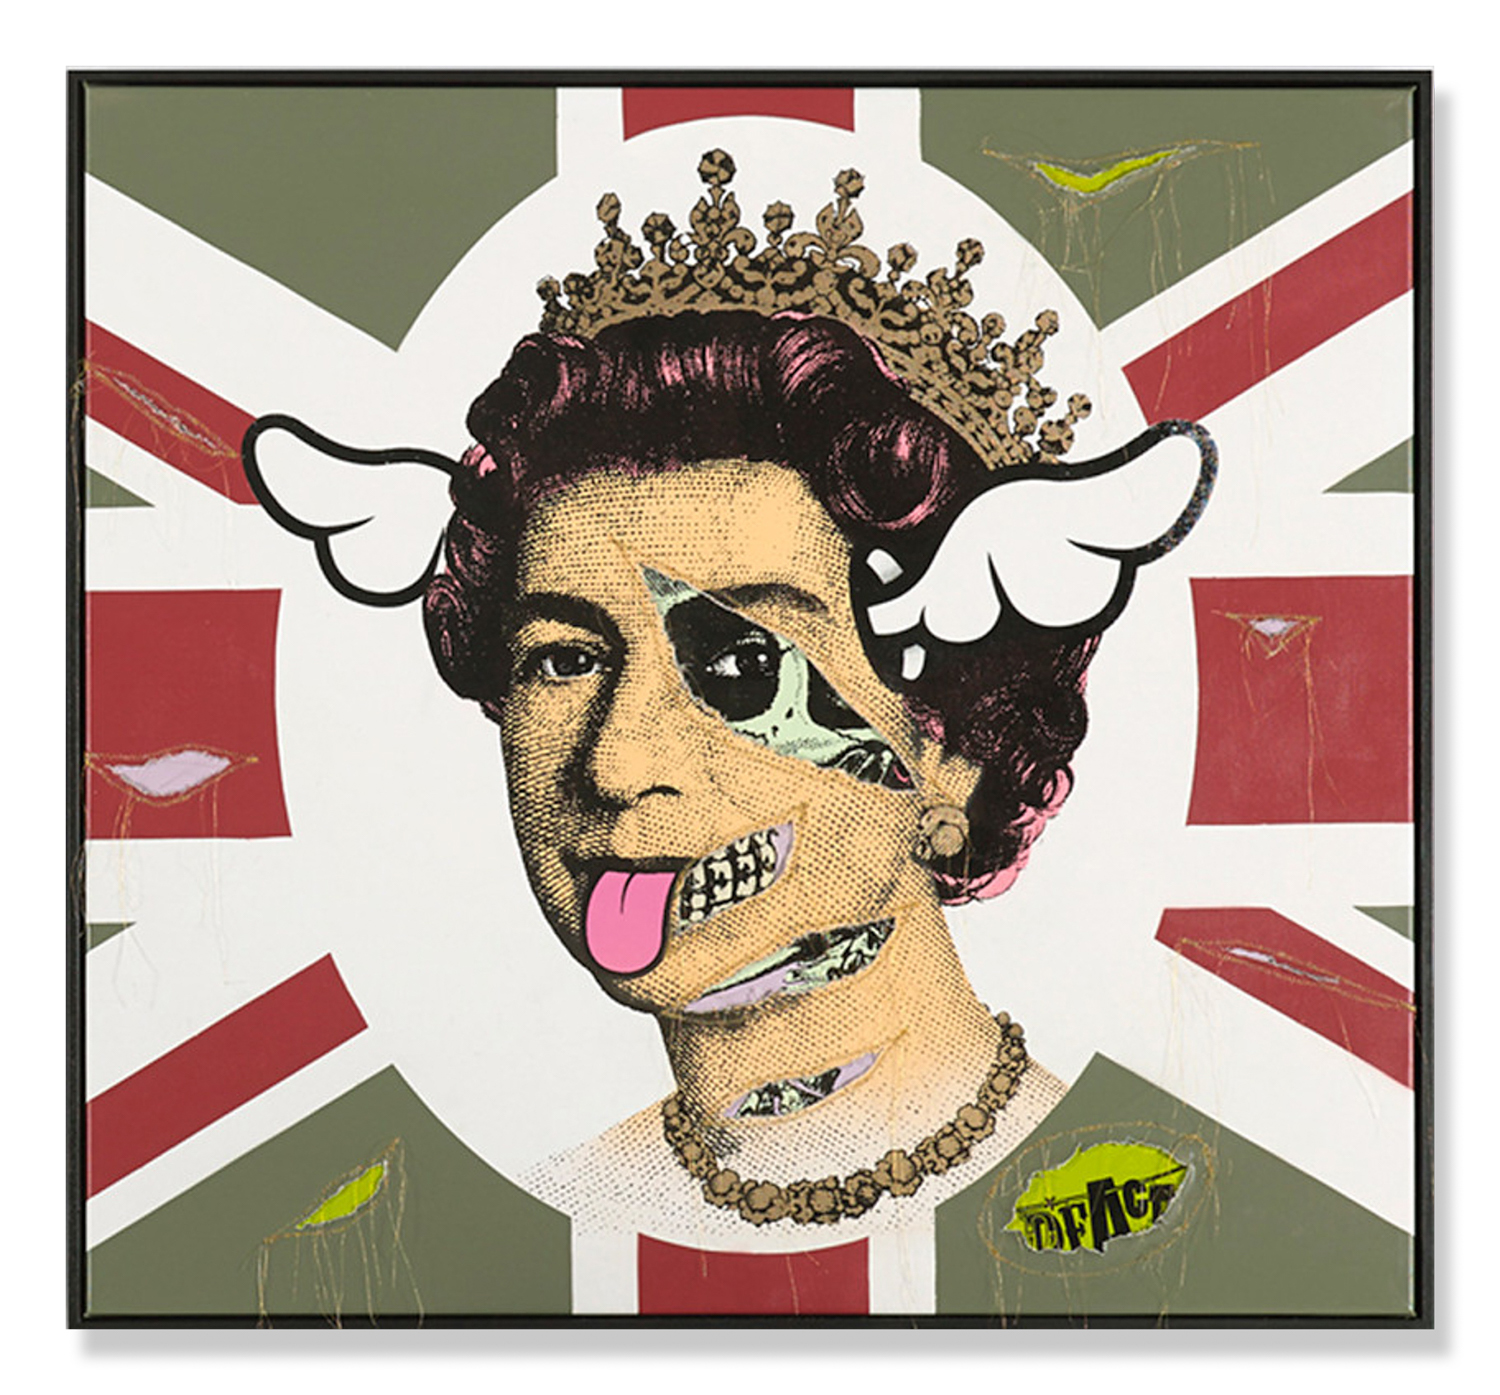 """D*Face  HRH Her Royal Hideousness  (2015) Enamel and pigment based paint on two canvases sewn together 52.75"""" x 48.75"""" - framed  INQUIRE"""